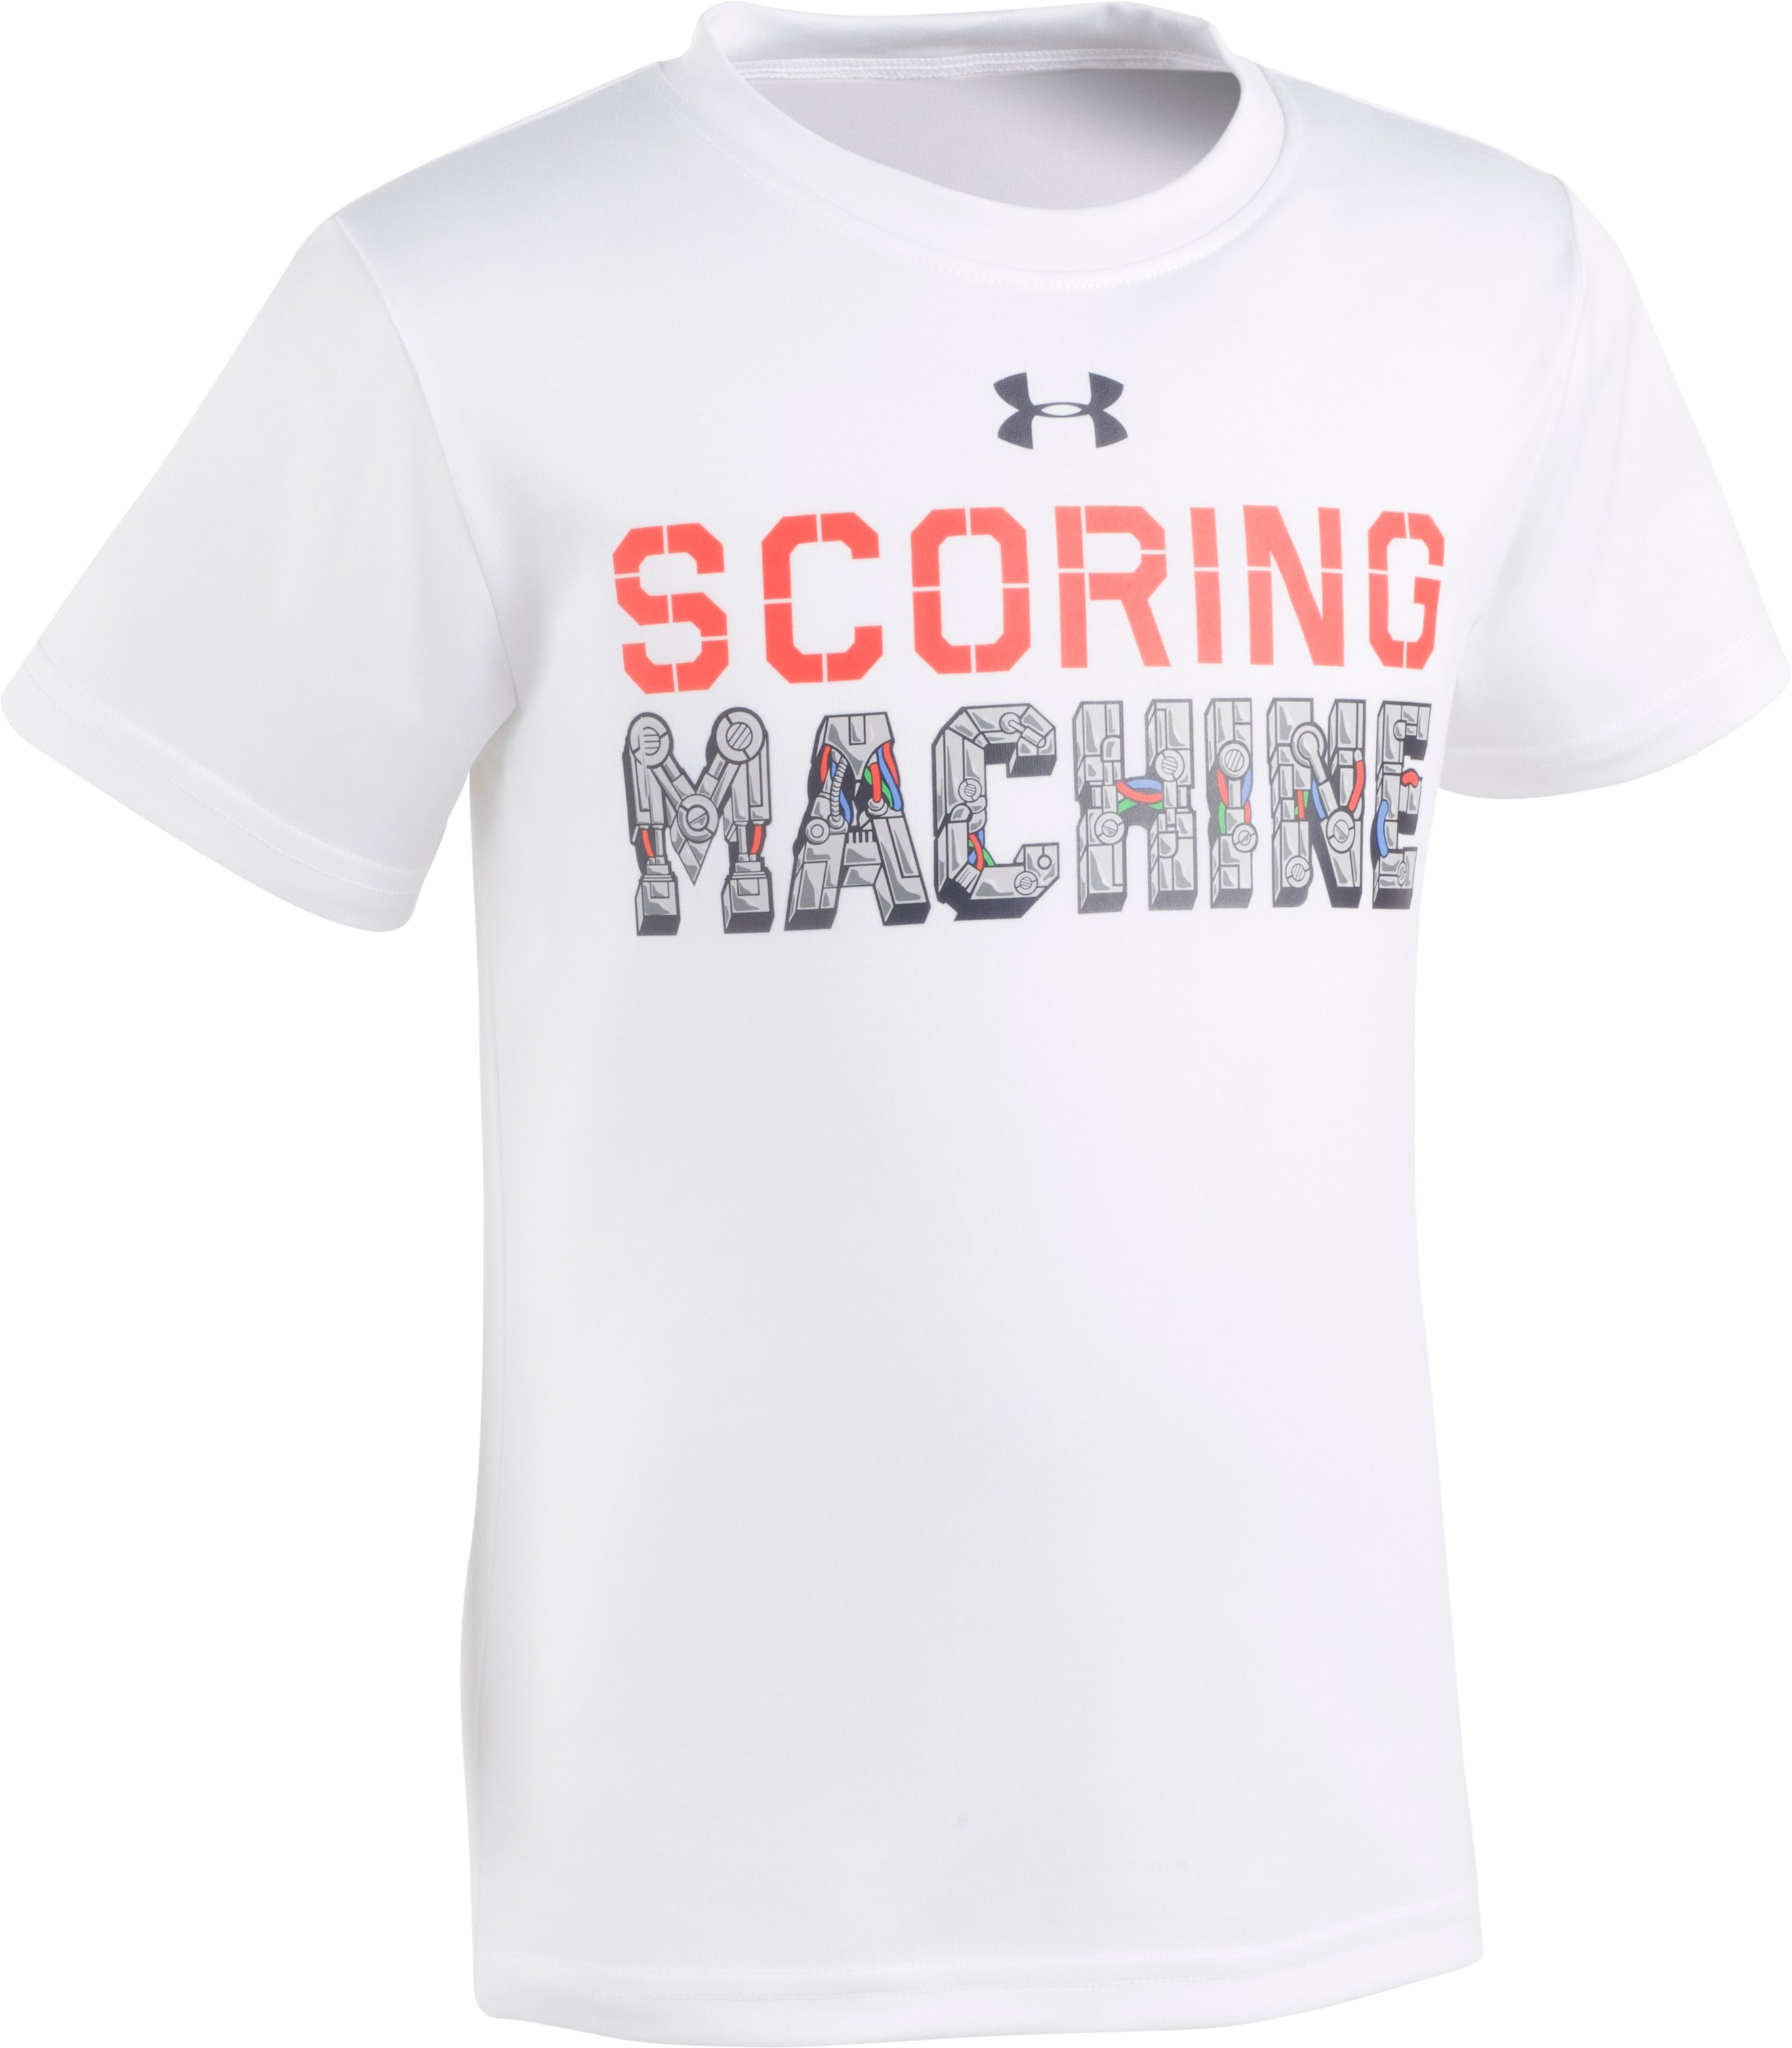 Boys' Pre-School UA Scoring Machine Short Sleeve Shirt, White, zoomed image